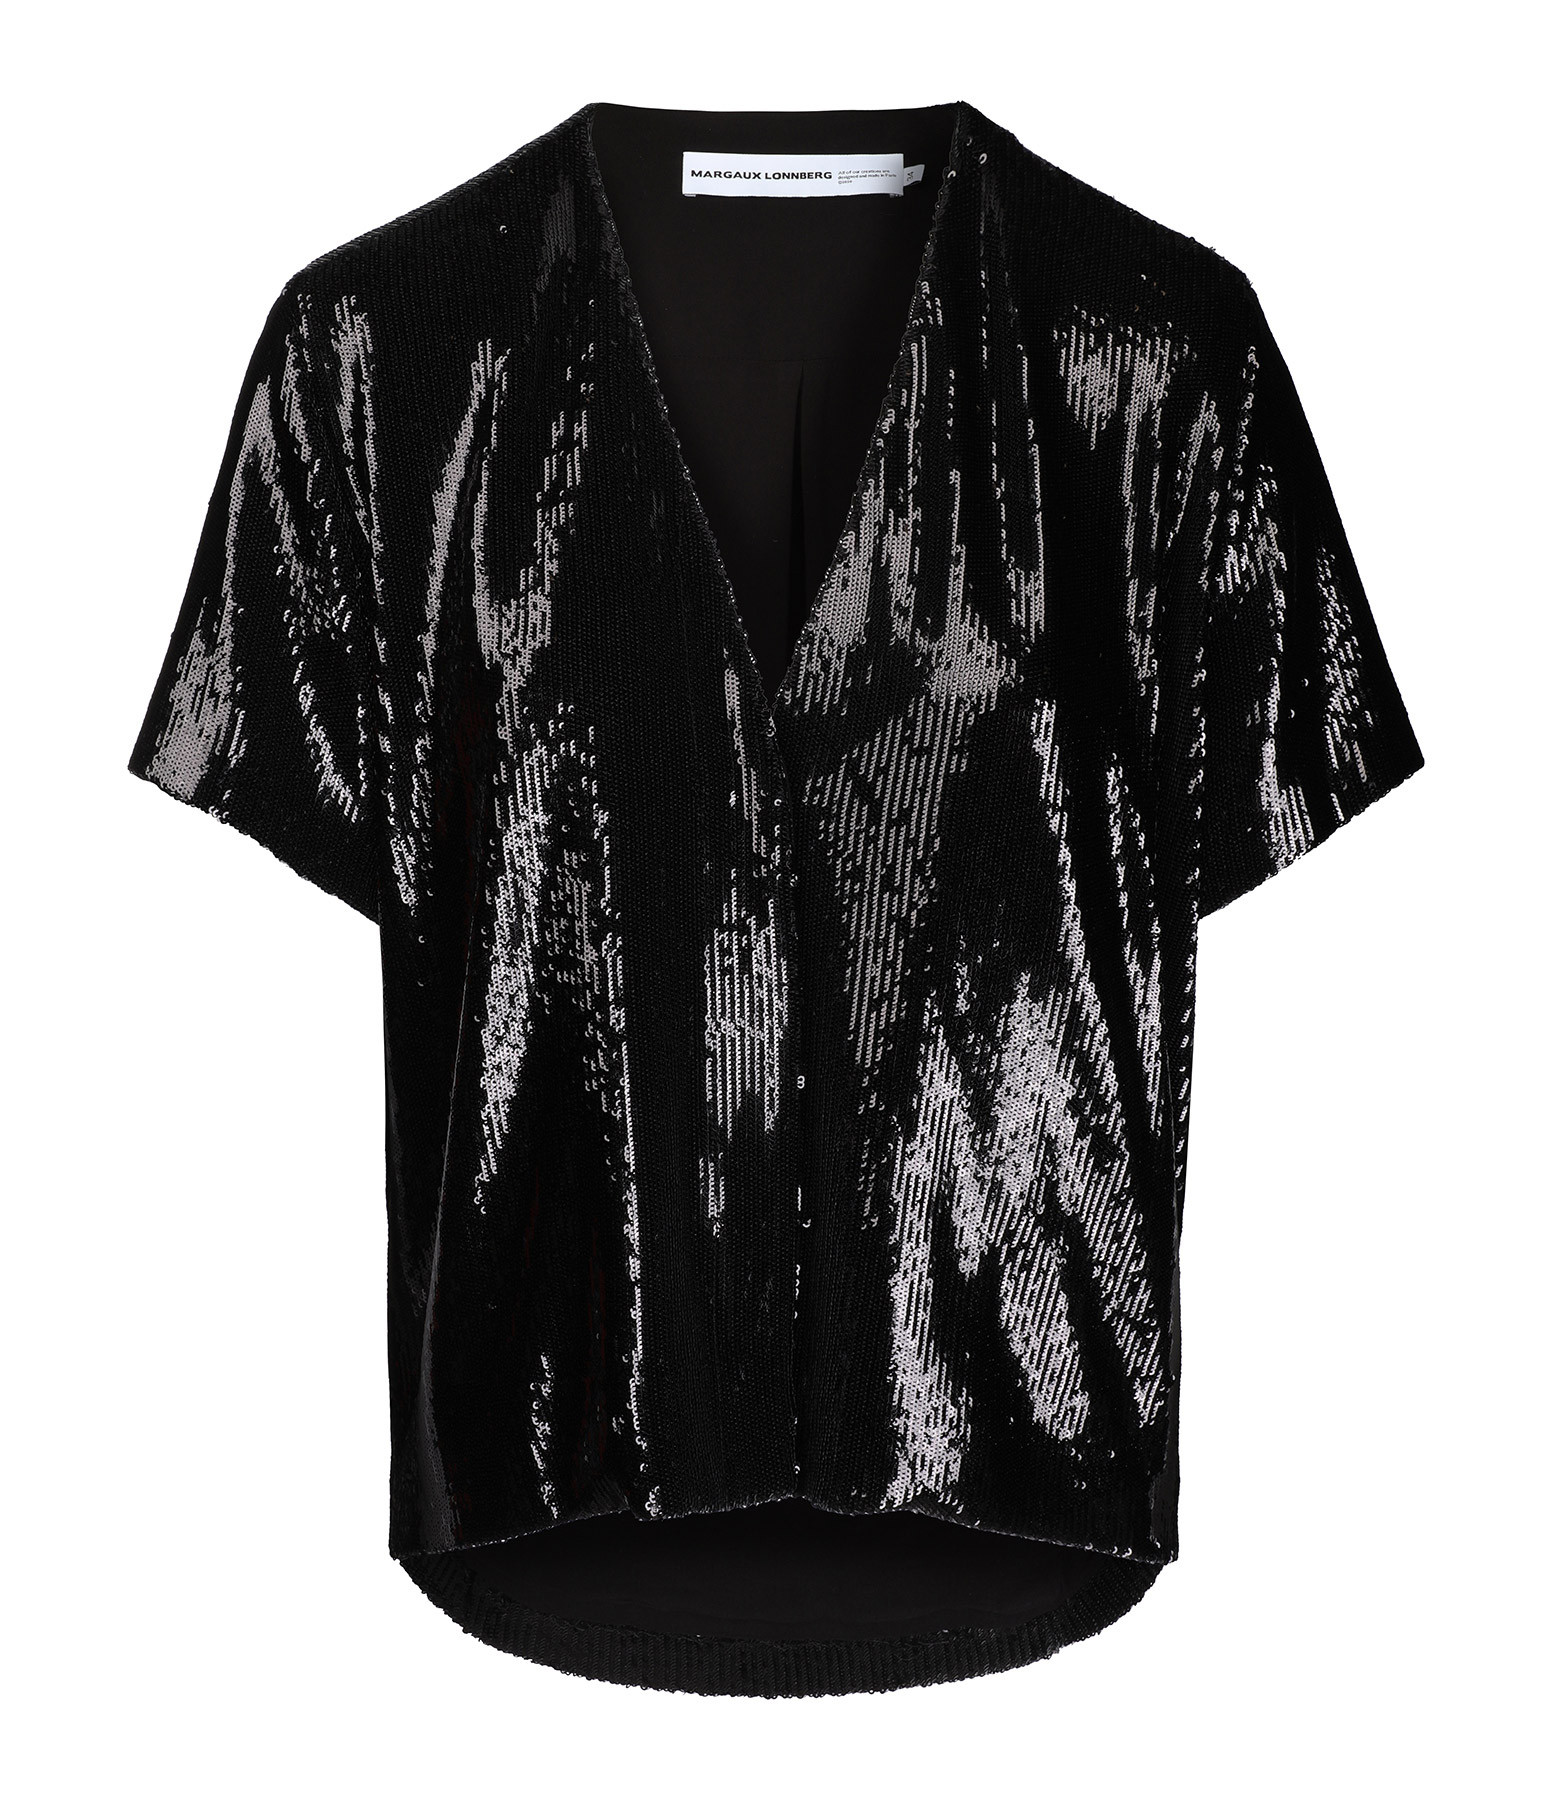 MARGAUX LONNBERG - Top Elson Sequin Noir Brillant